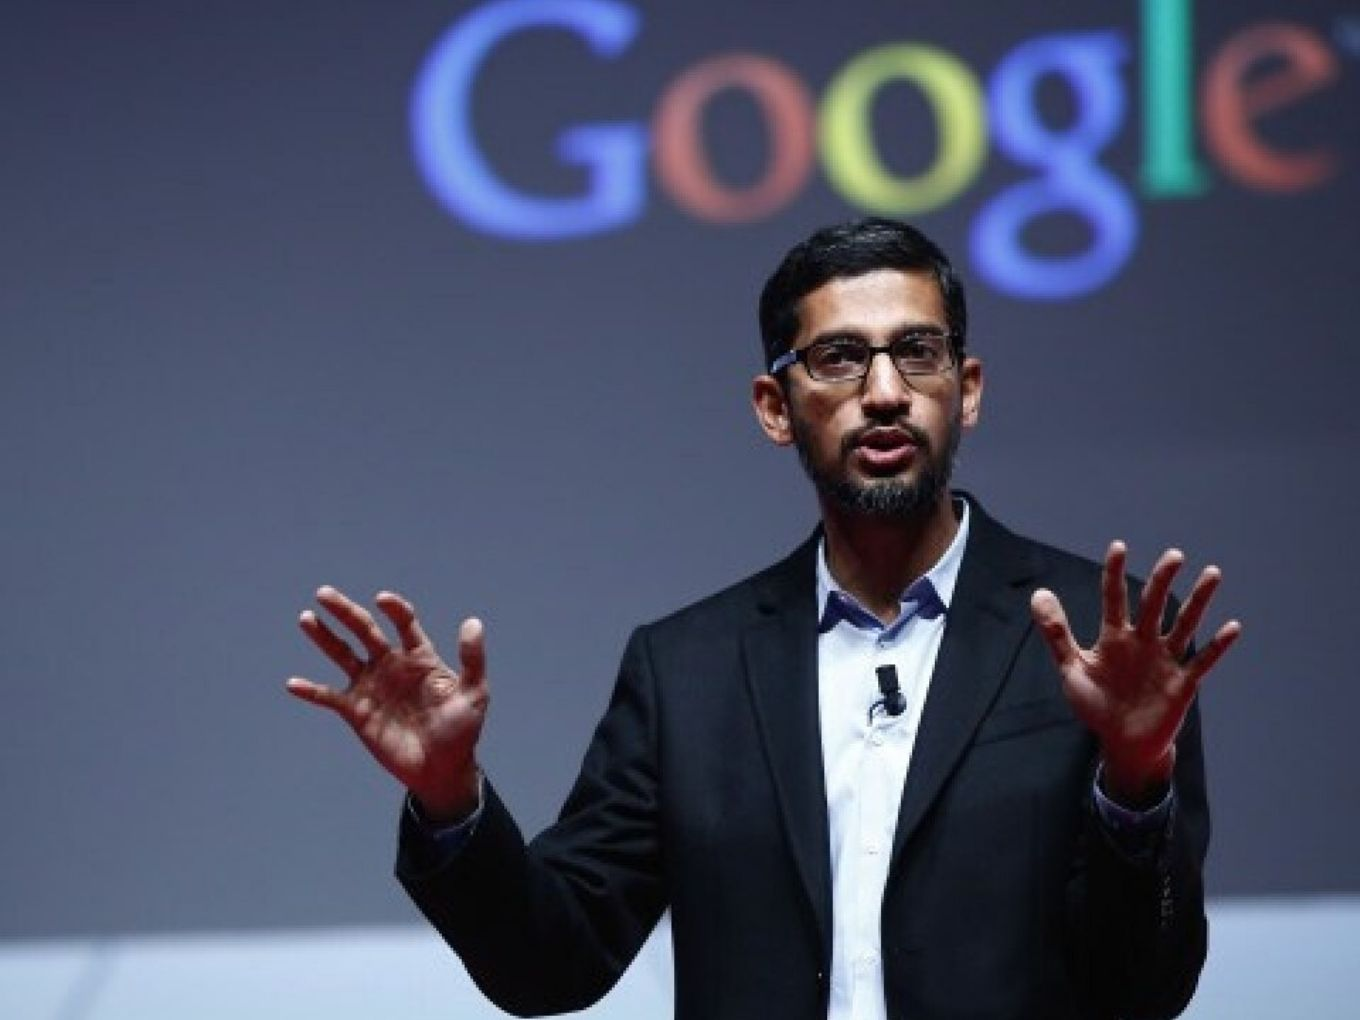 Sundar Pichai The New CEO of Alphabet; Brin And PageStep Away